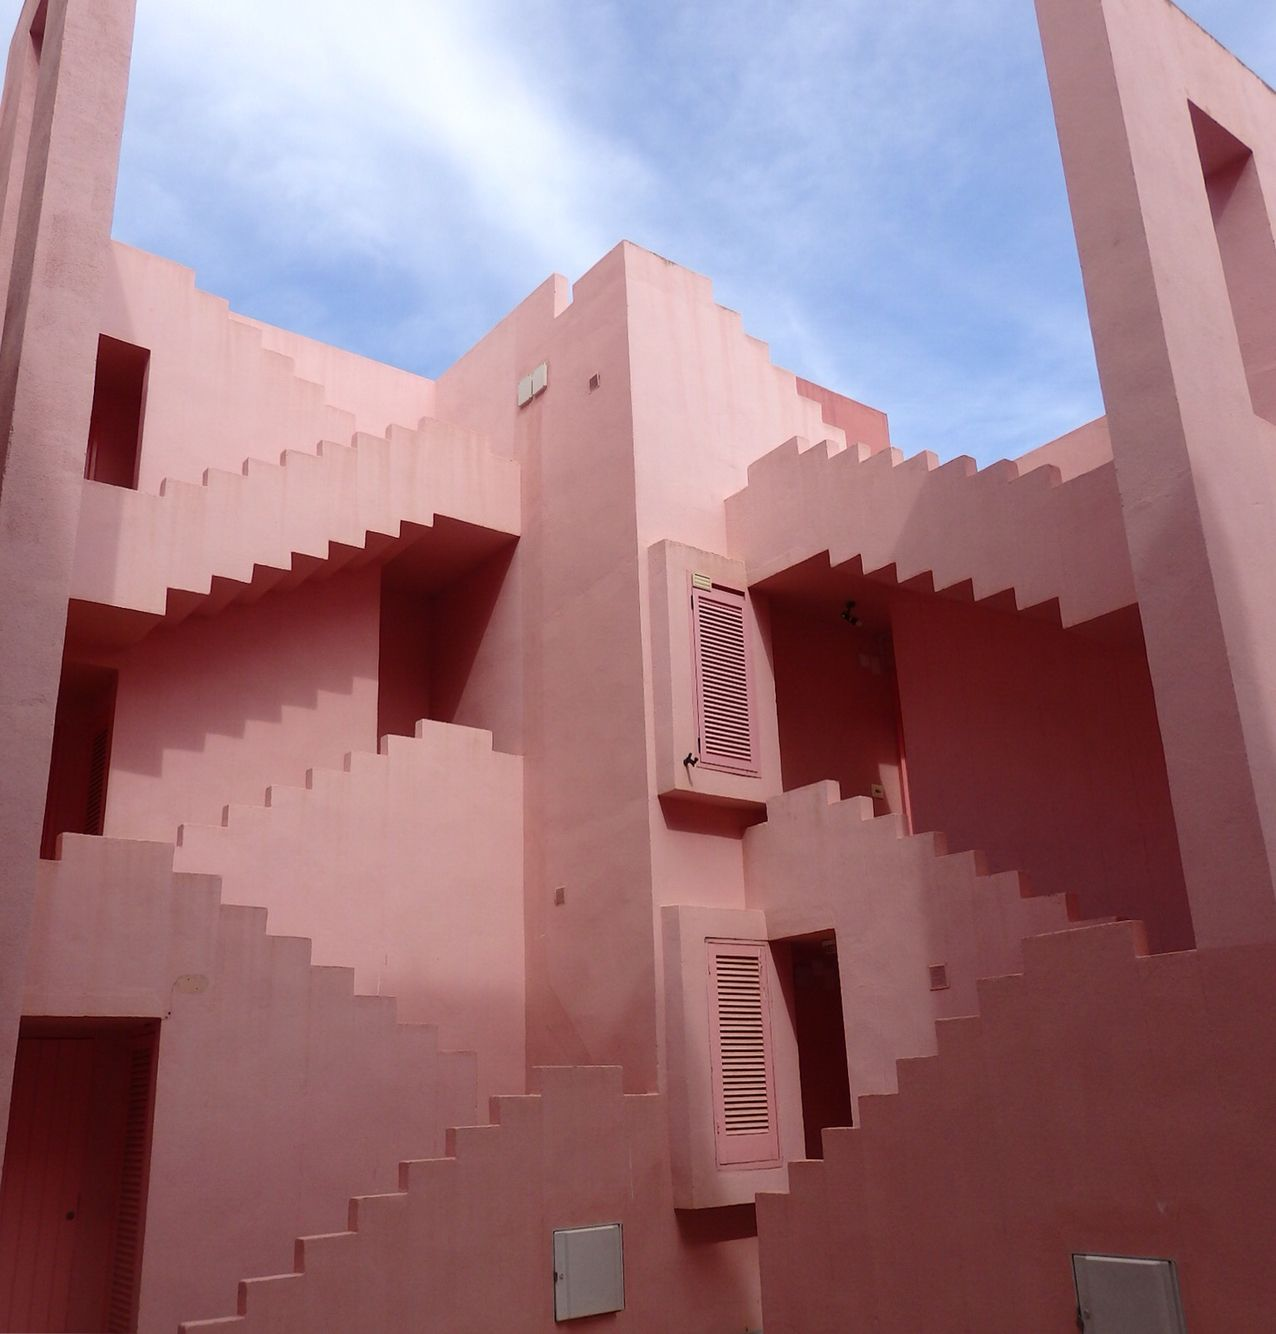 La Muralla Roja is a real life Escher painting